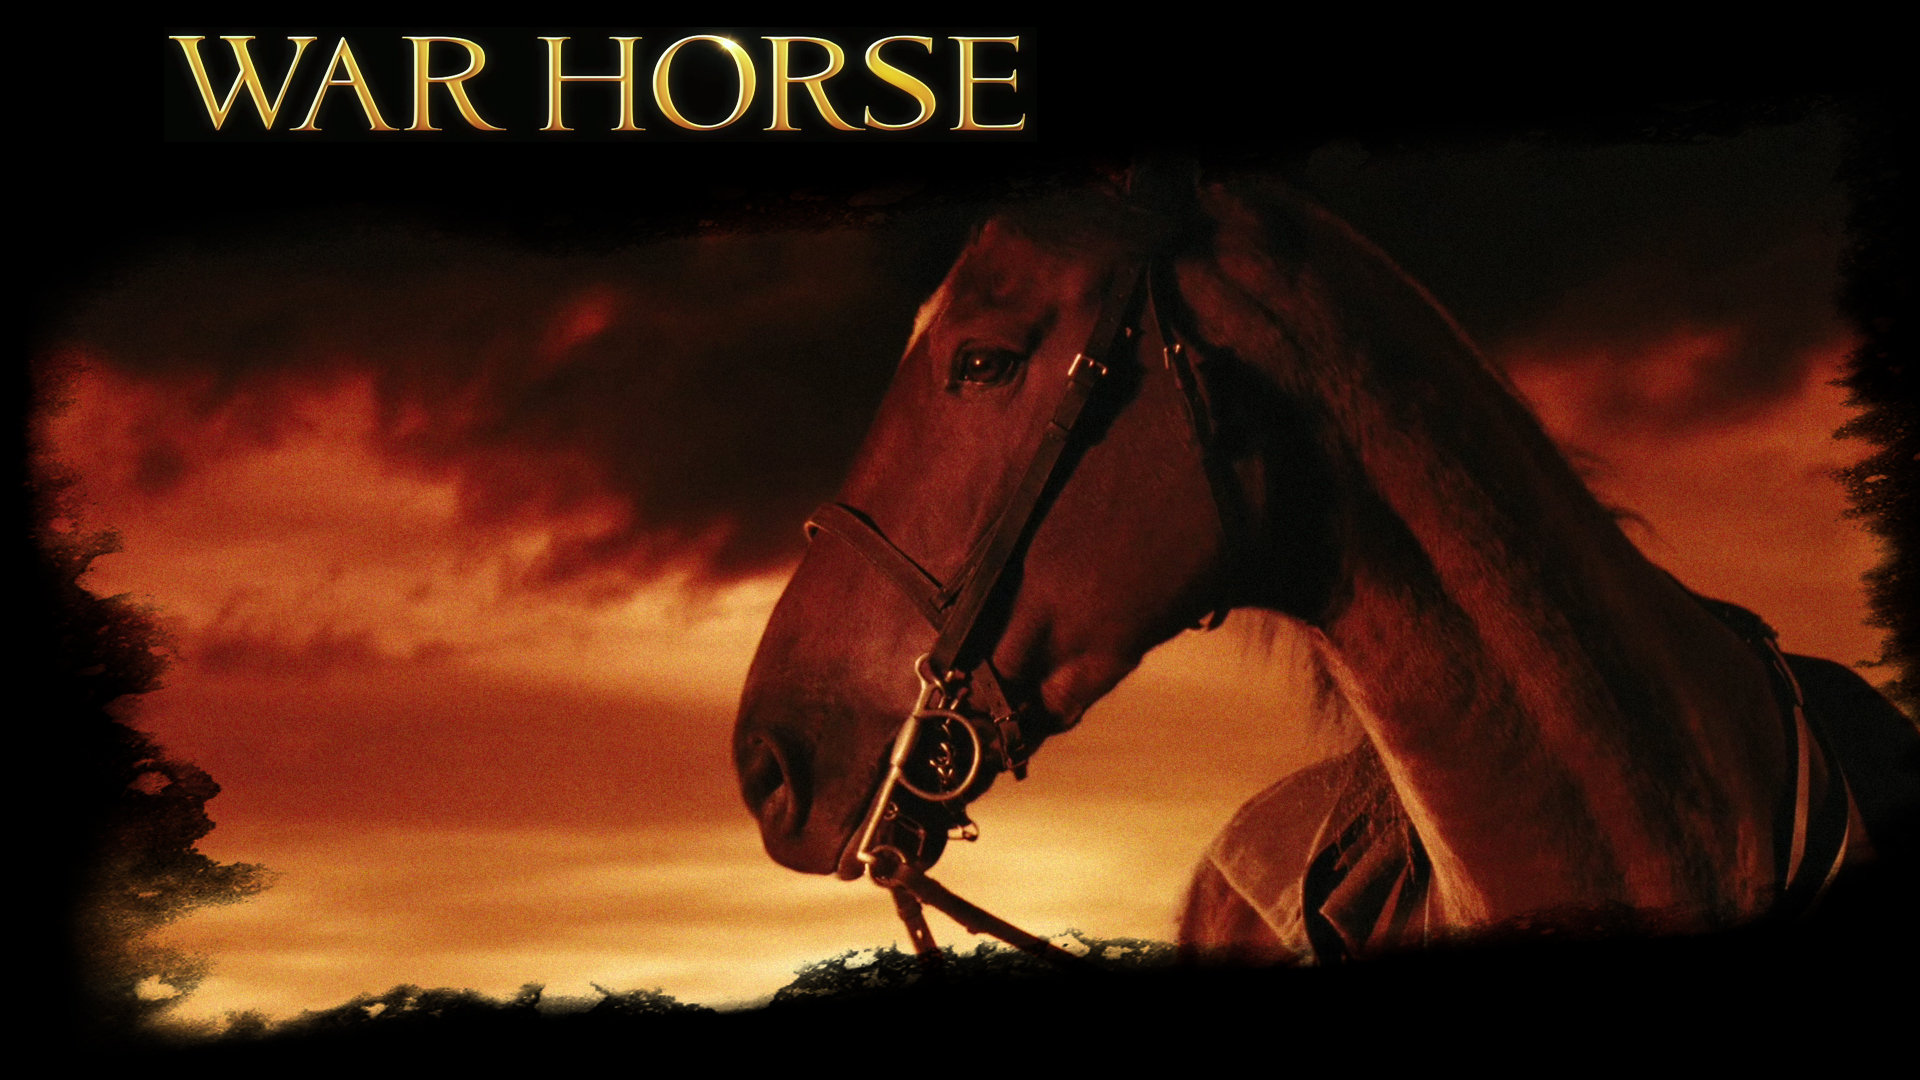 20 War Horse Hd Wallpapers War Horse Movie Hd 1891781 Hd Wallpaper Backgrounds Download